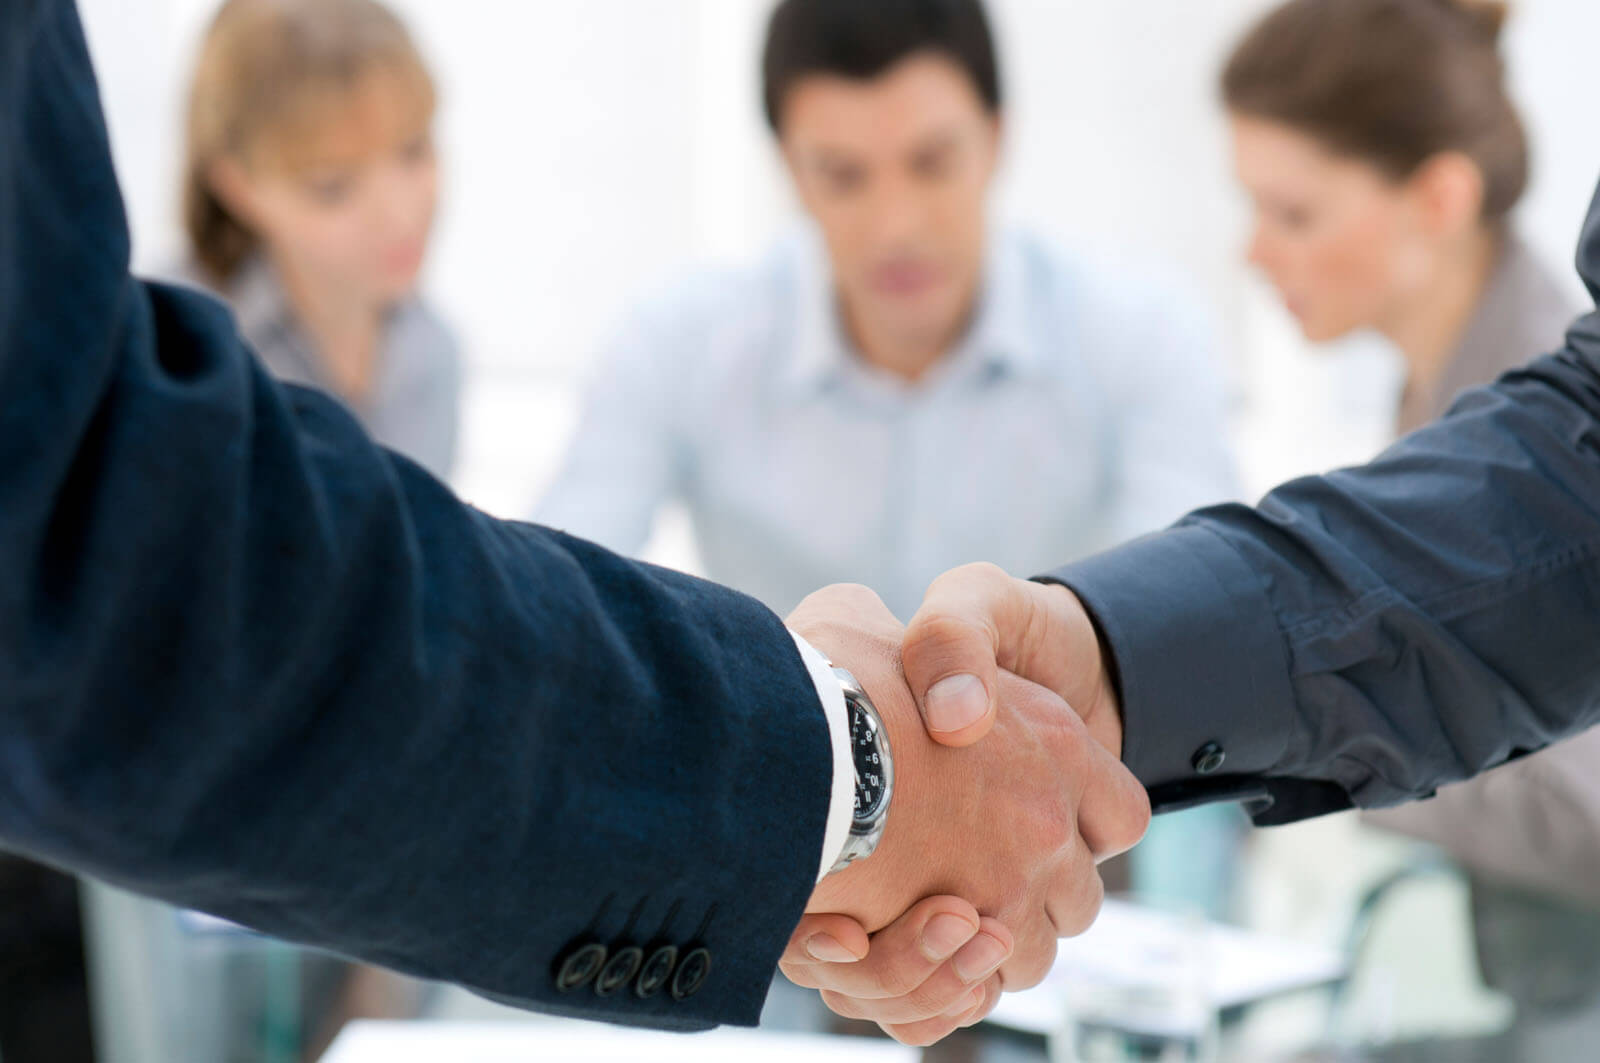 Contracts for federal agencies- Two people shaking hands